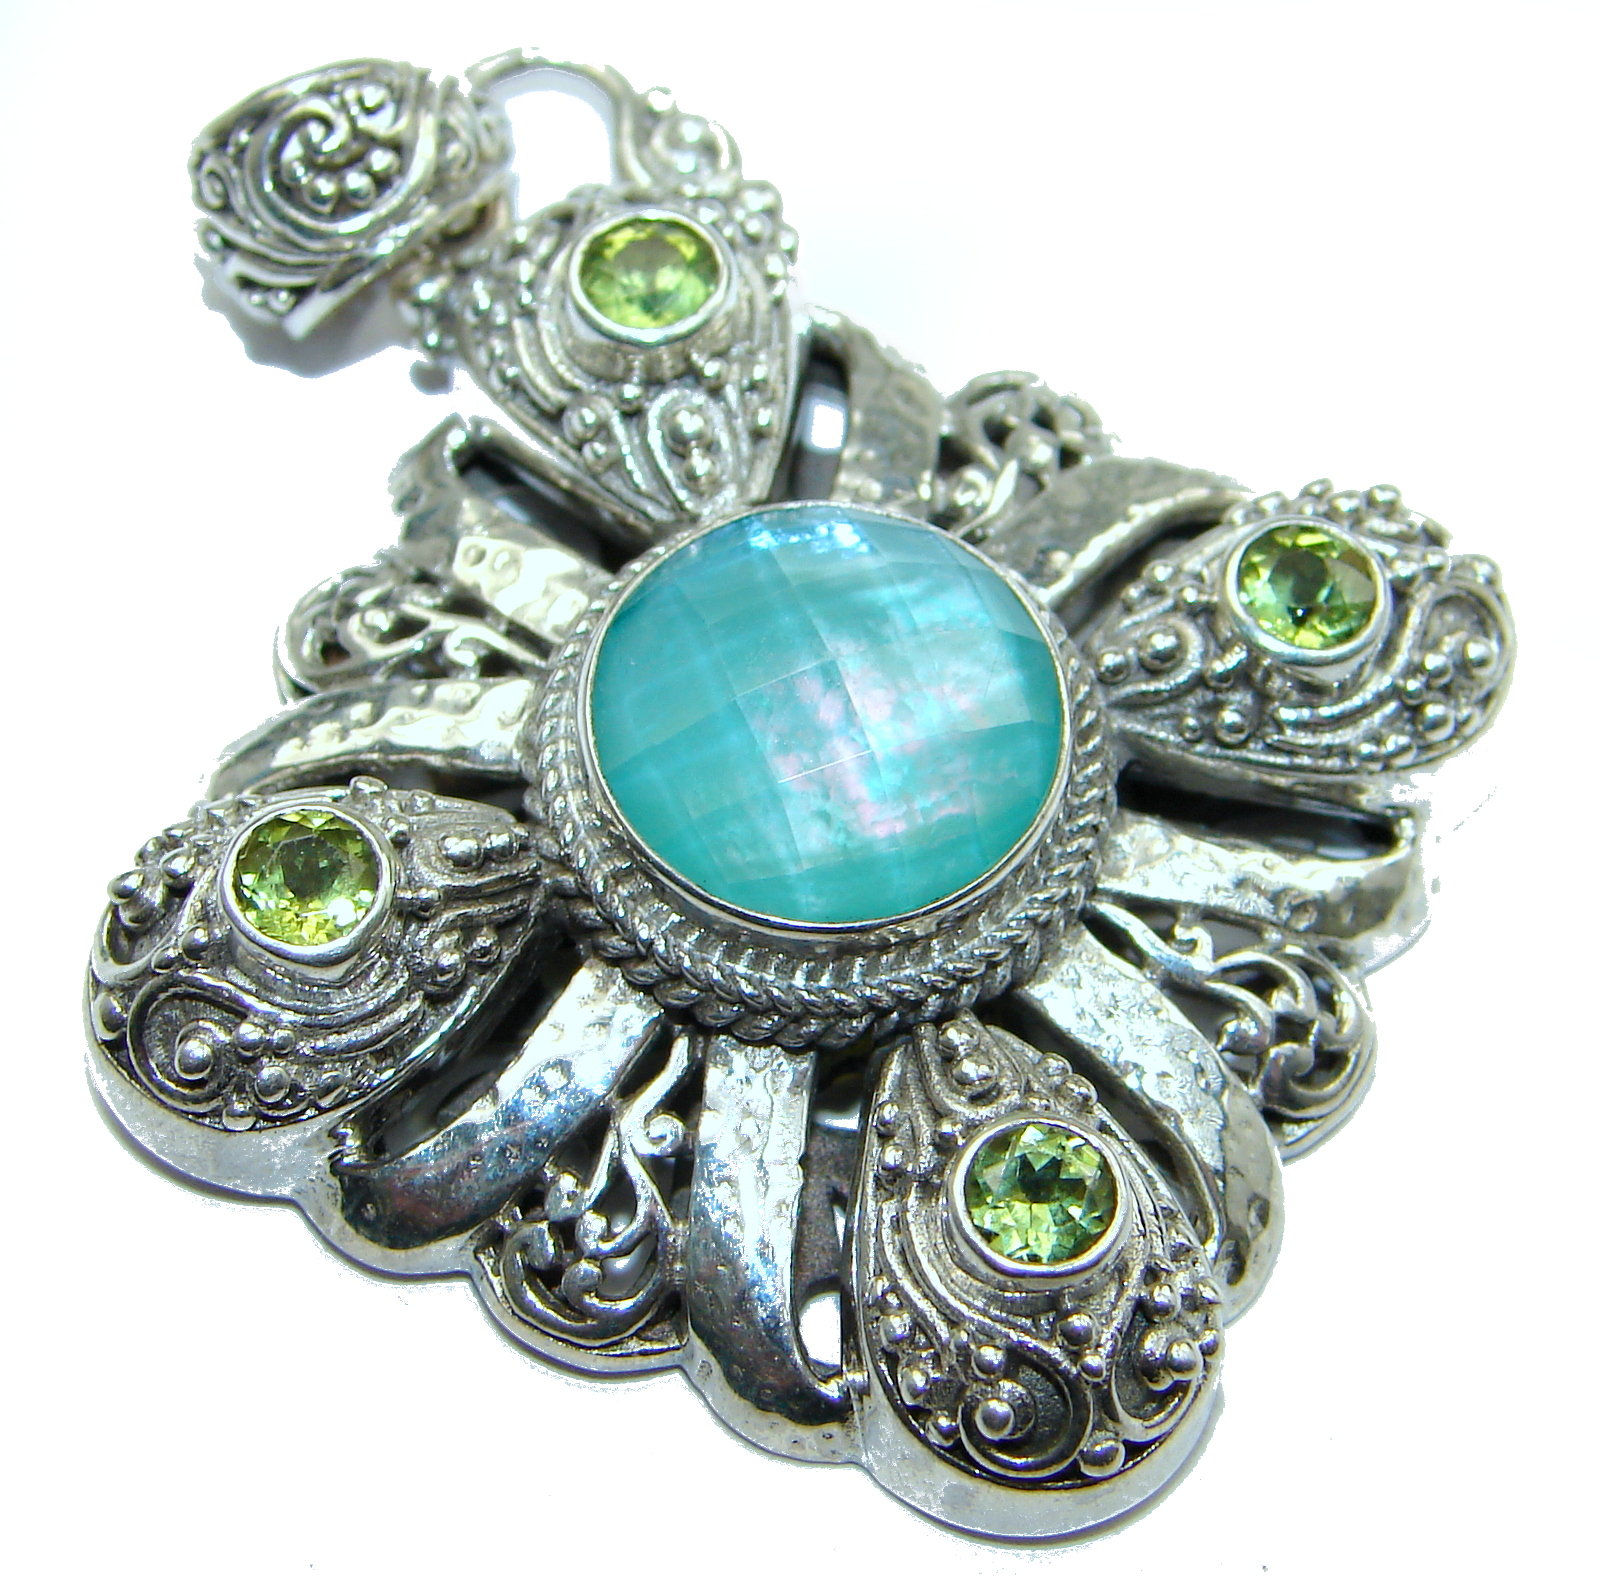 Amazing Minty Mother of Pearl .925 Sterling Silver handcrafted Pendant